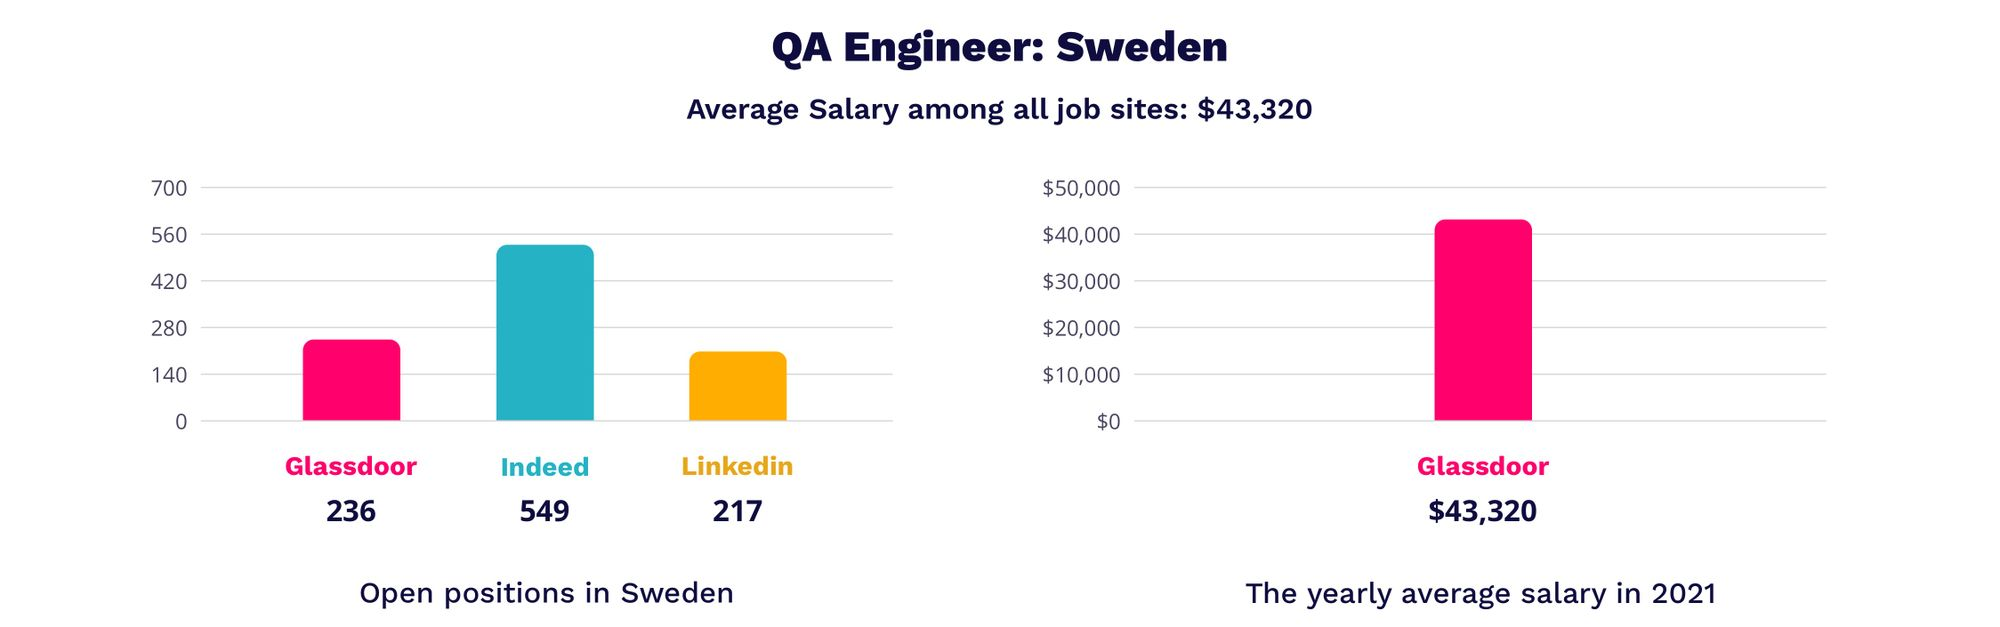 quality assurance engineer salaries in Sweden